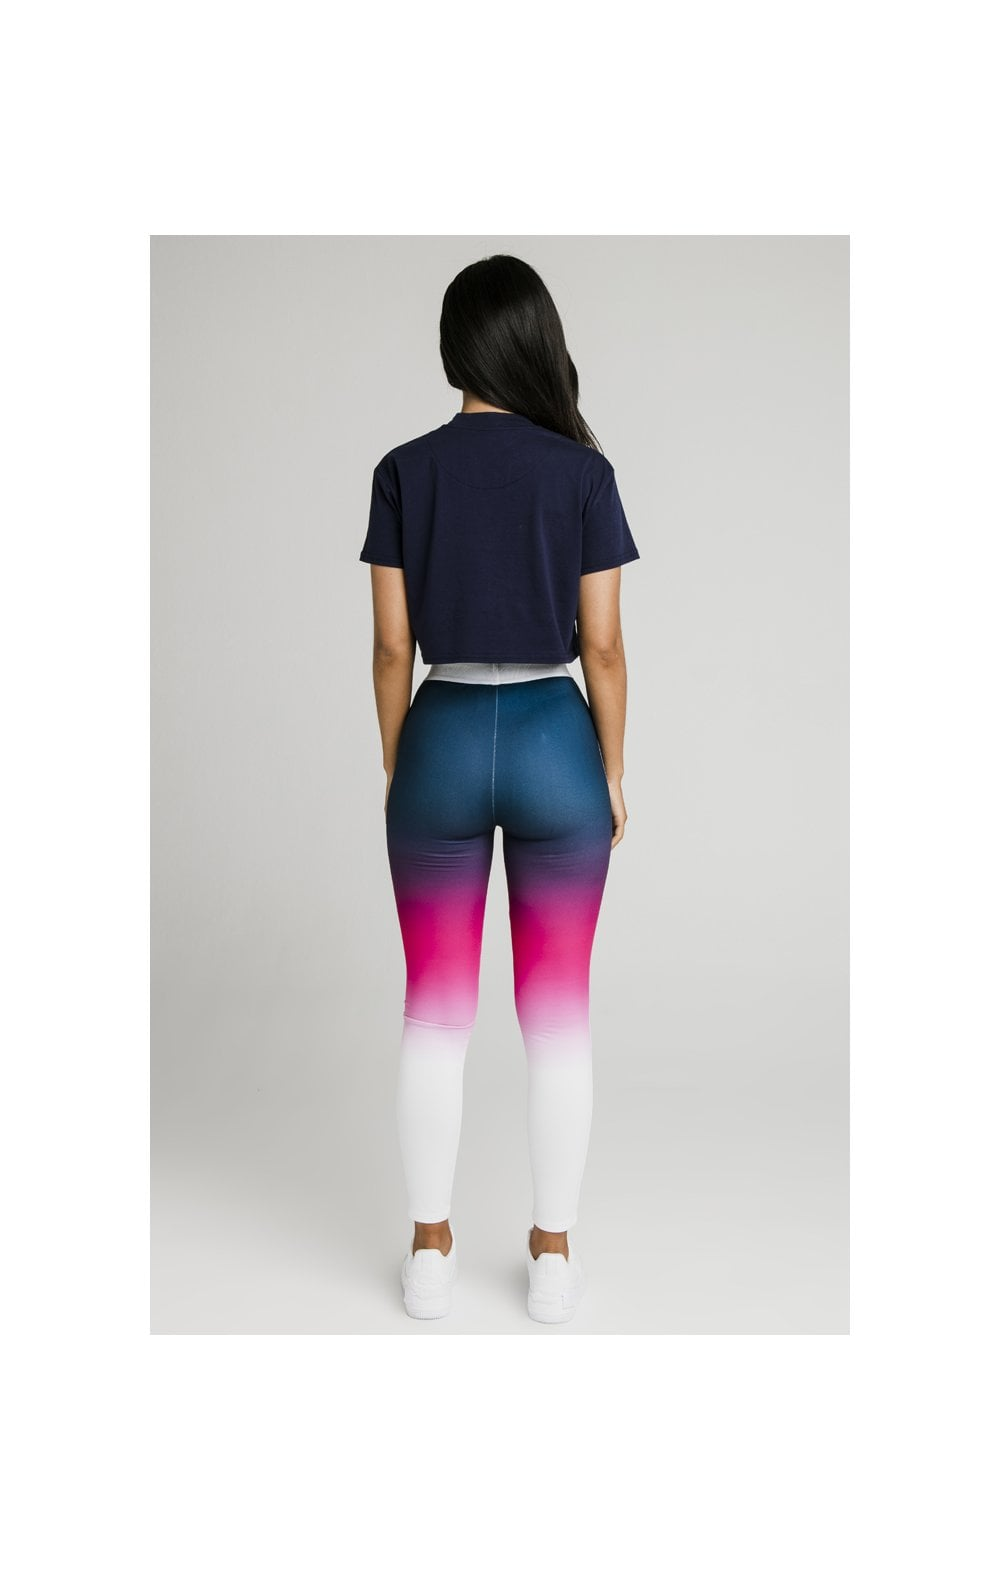 Load image into Gallery viewer, SikSilk Fade Tape Leggings - Navy, Pink & White (5)